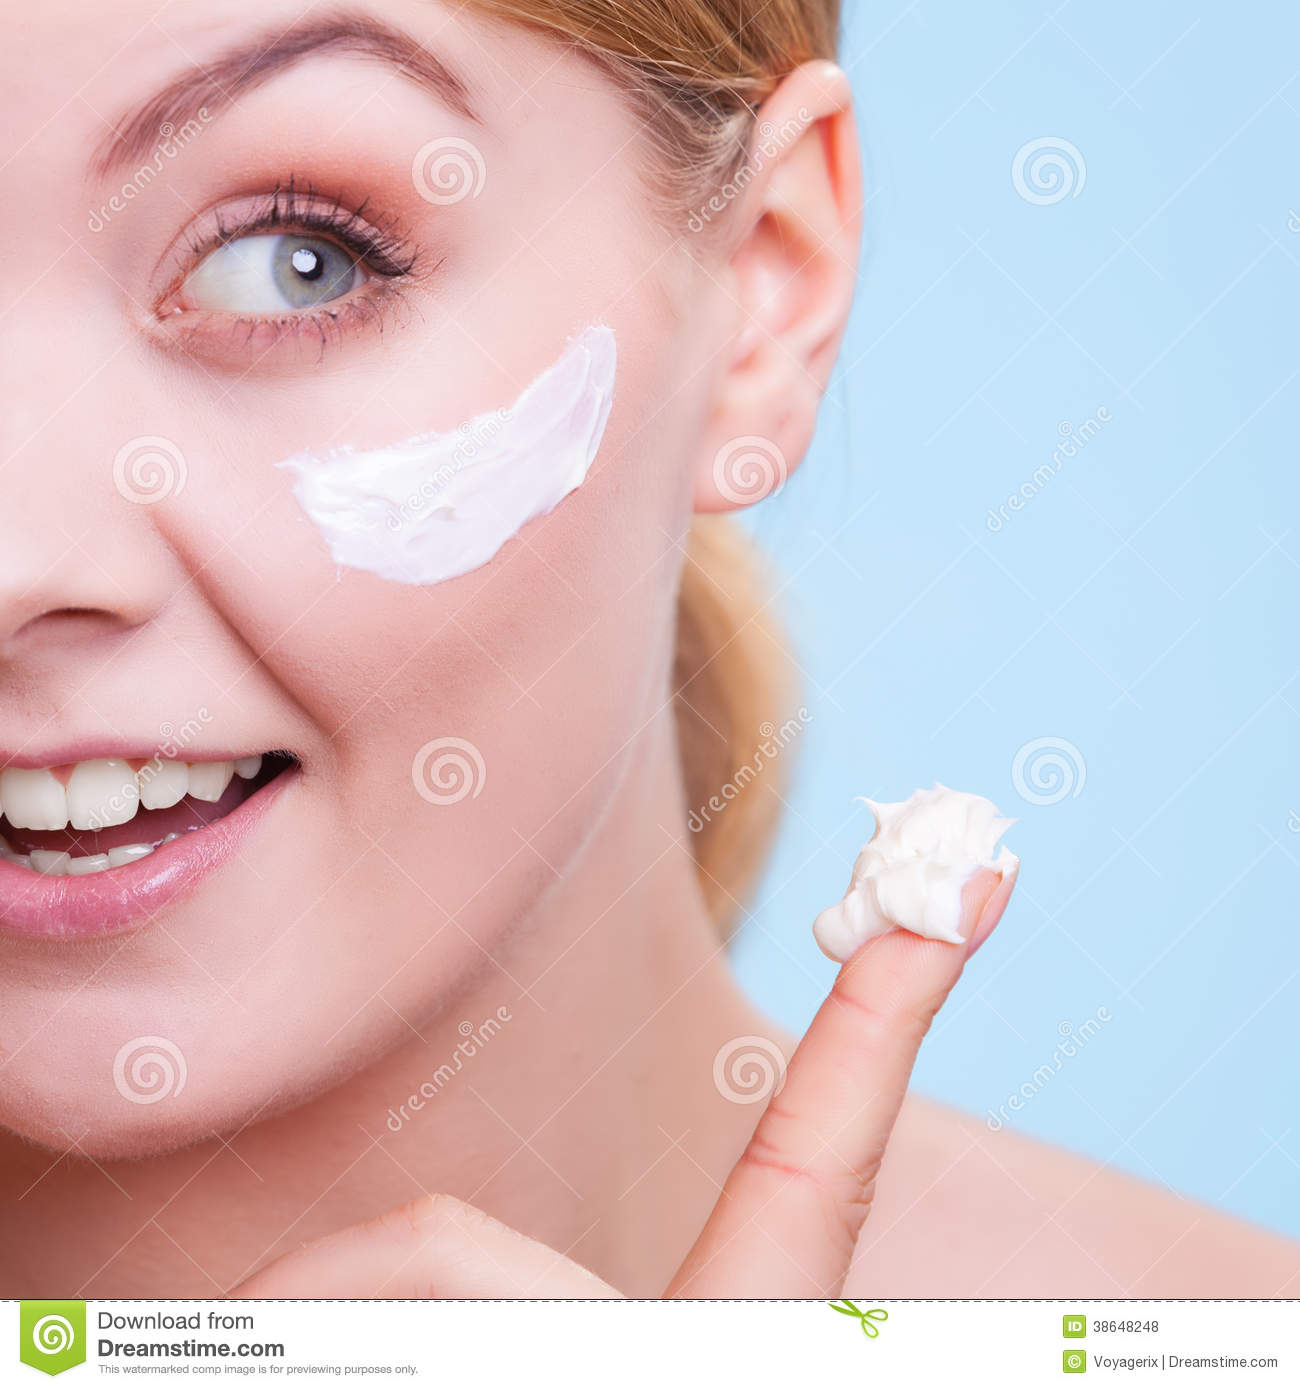 Excellent Facial dry flaky skin red your